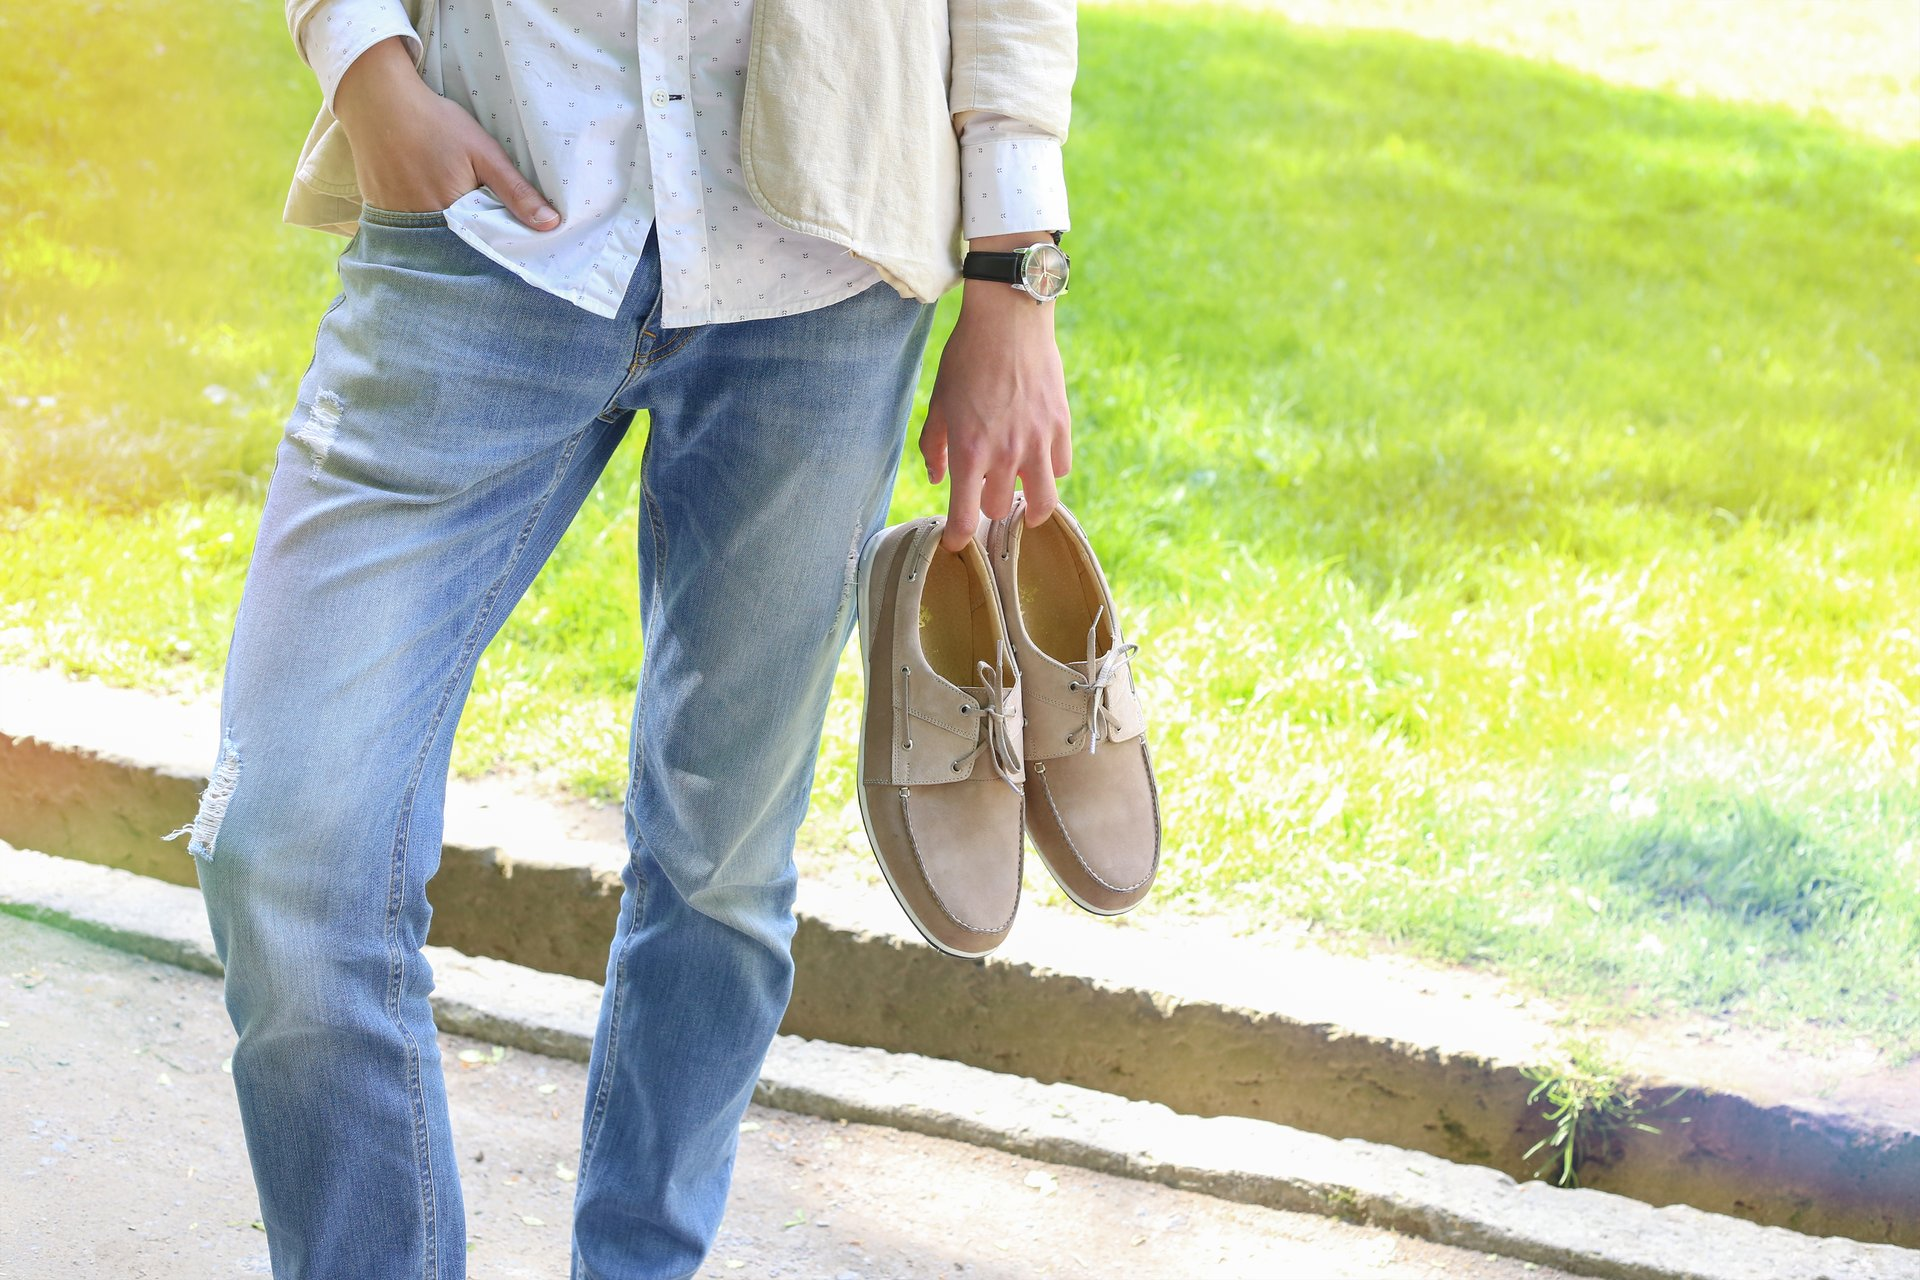 Student walking barefoot in the park holding trendy shoes in hands.